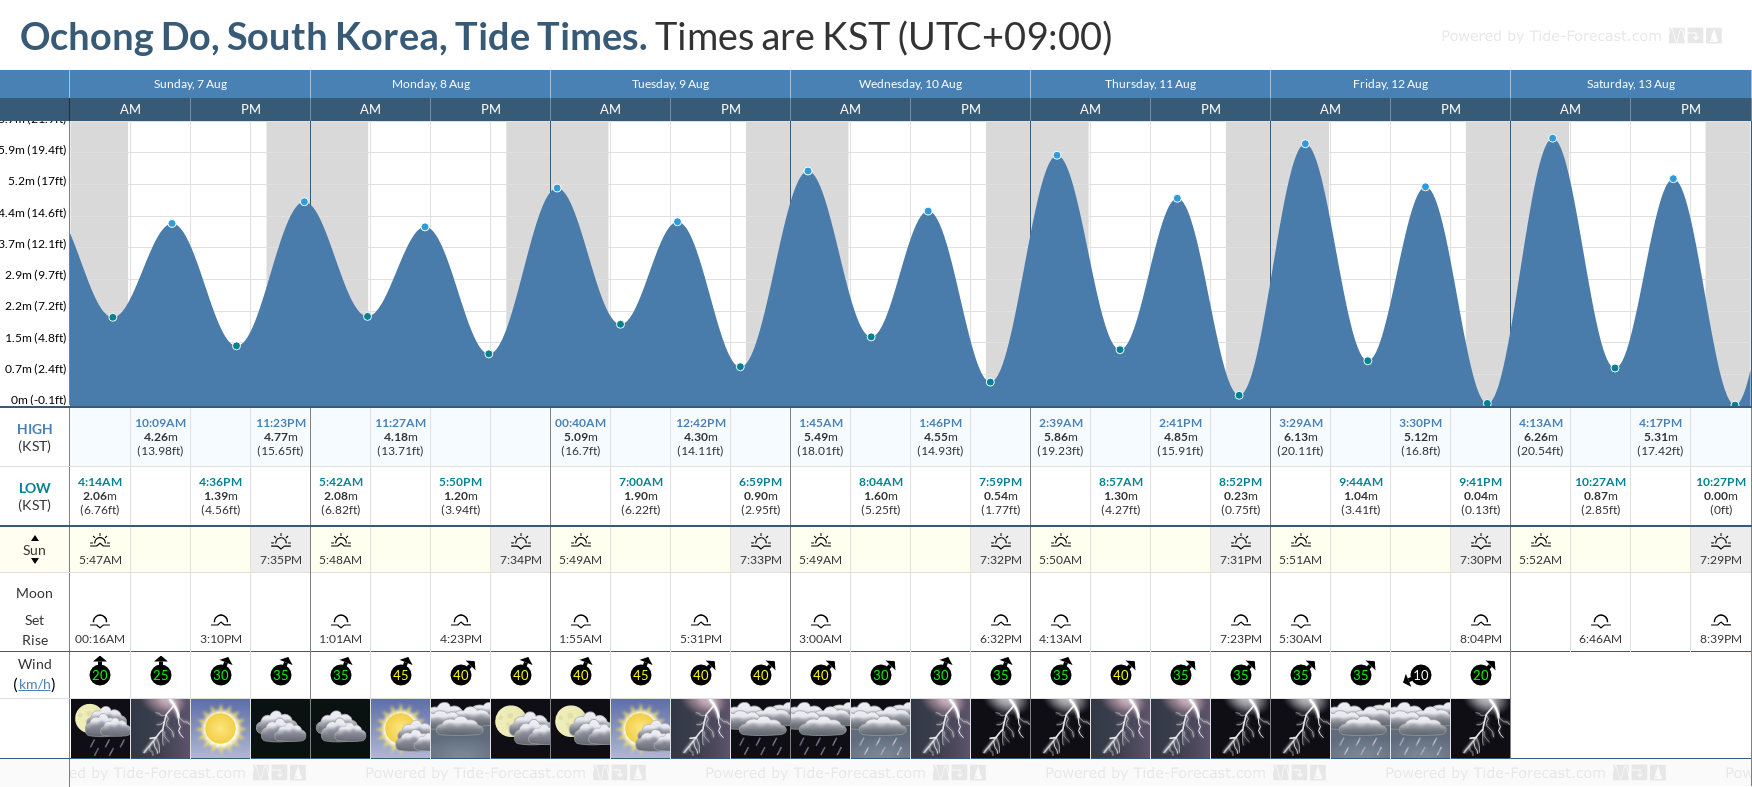 Ochong Do, South Korea Tide Chart including high and low tide tide times for the next 7 days